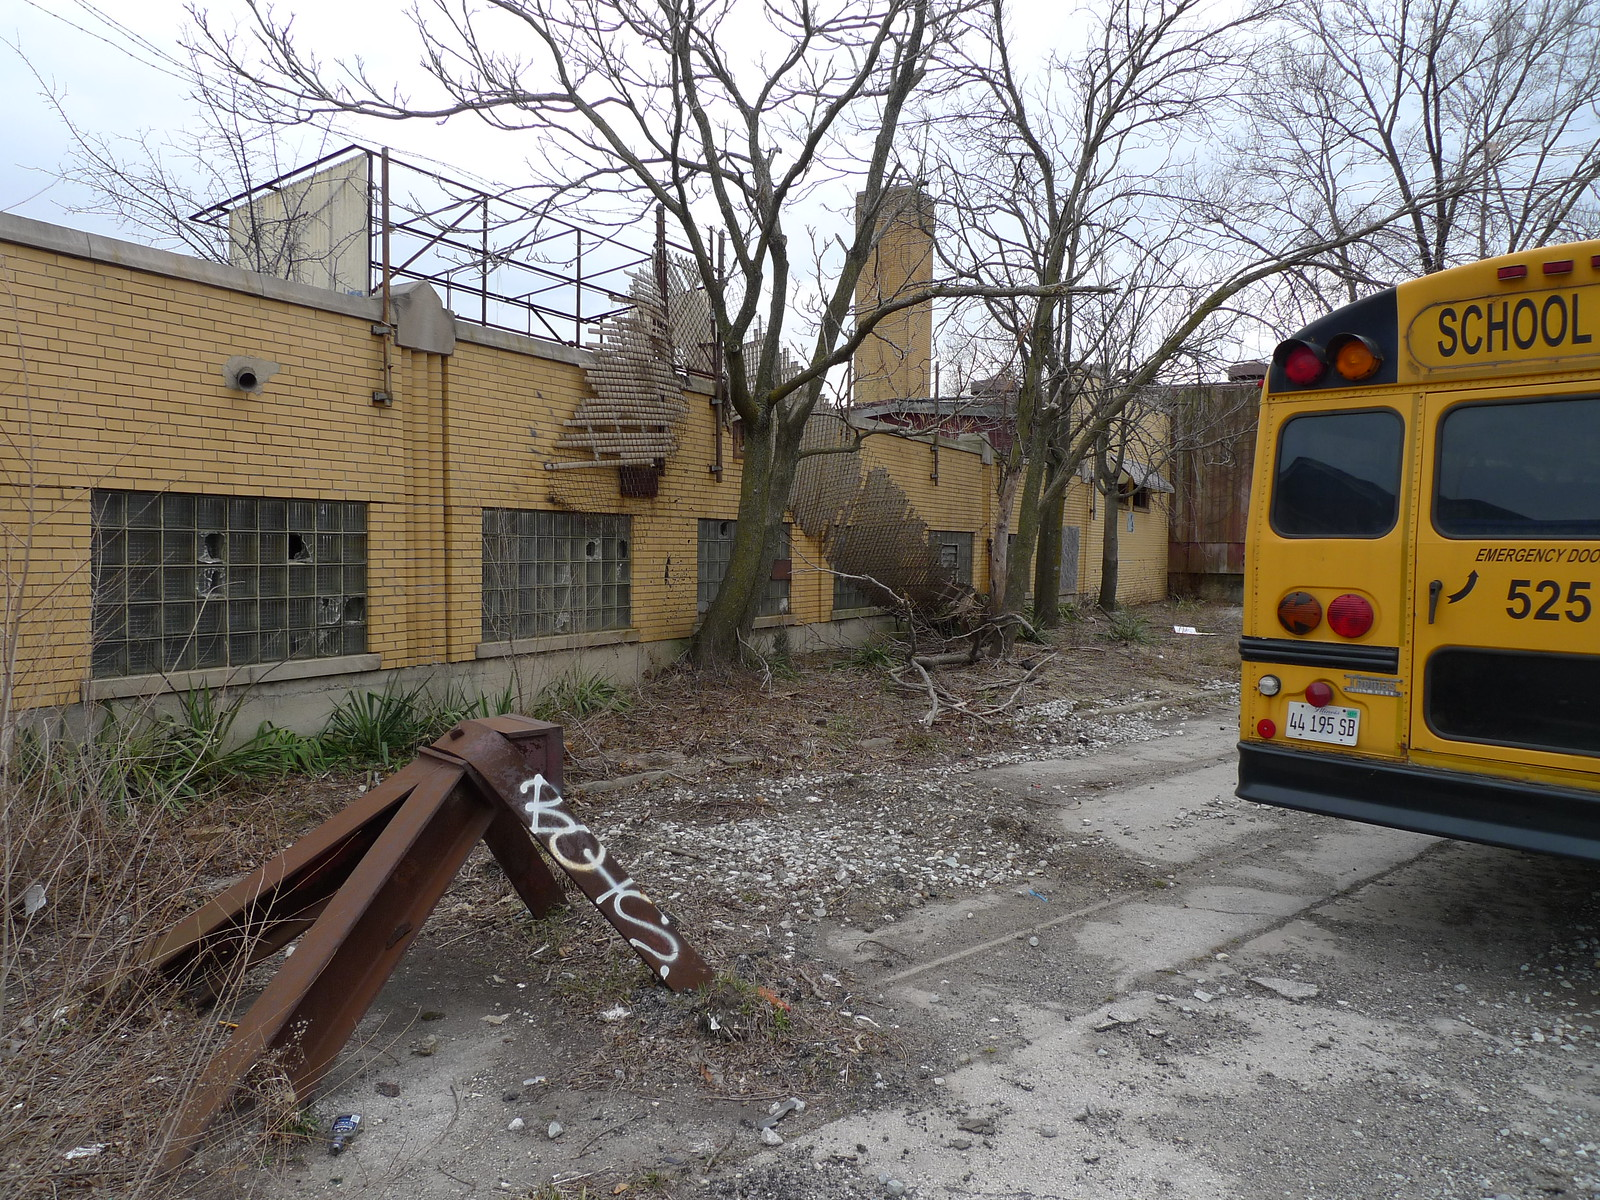 former home of Borden Dairy and Formold Plastics | by find myself a city (1001 Afternoons in Chicago)